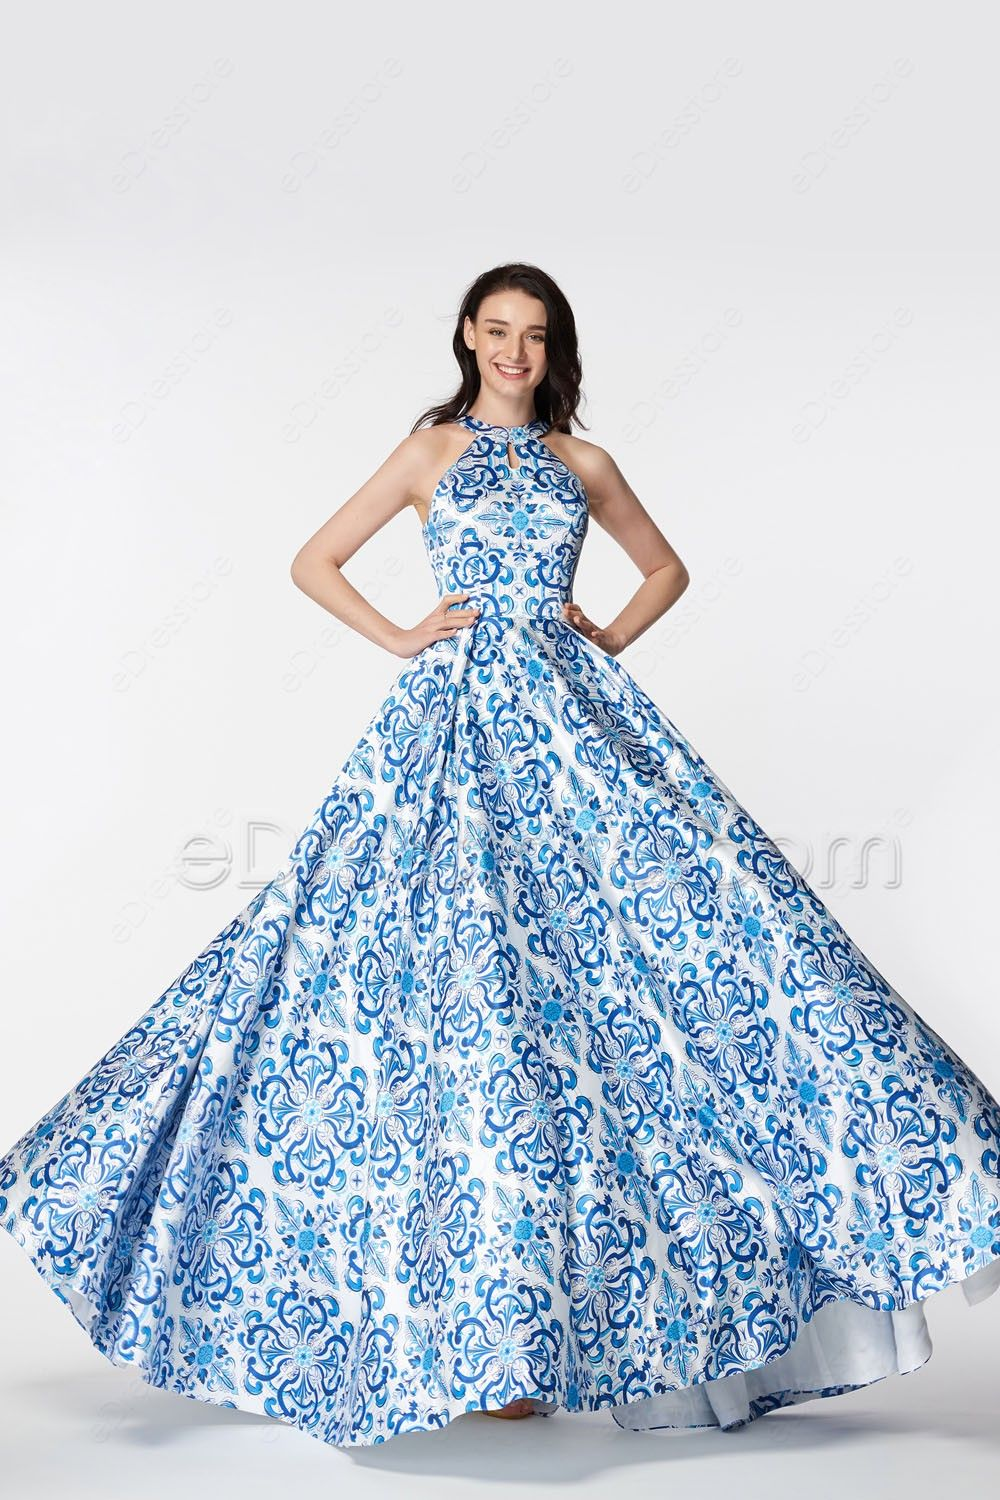 Blue Backless Print Ball Gown Prom Dresses | Ball gowns, Ball ...